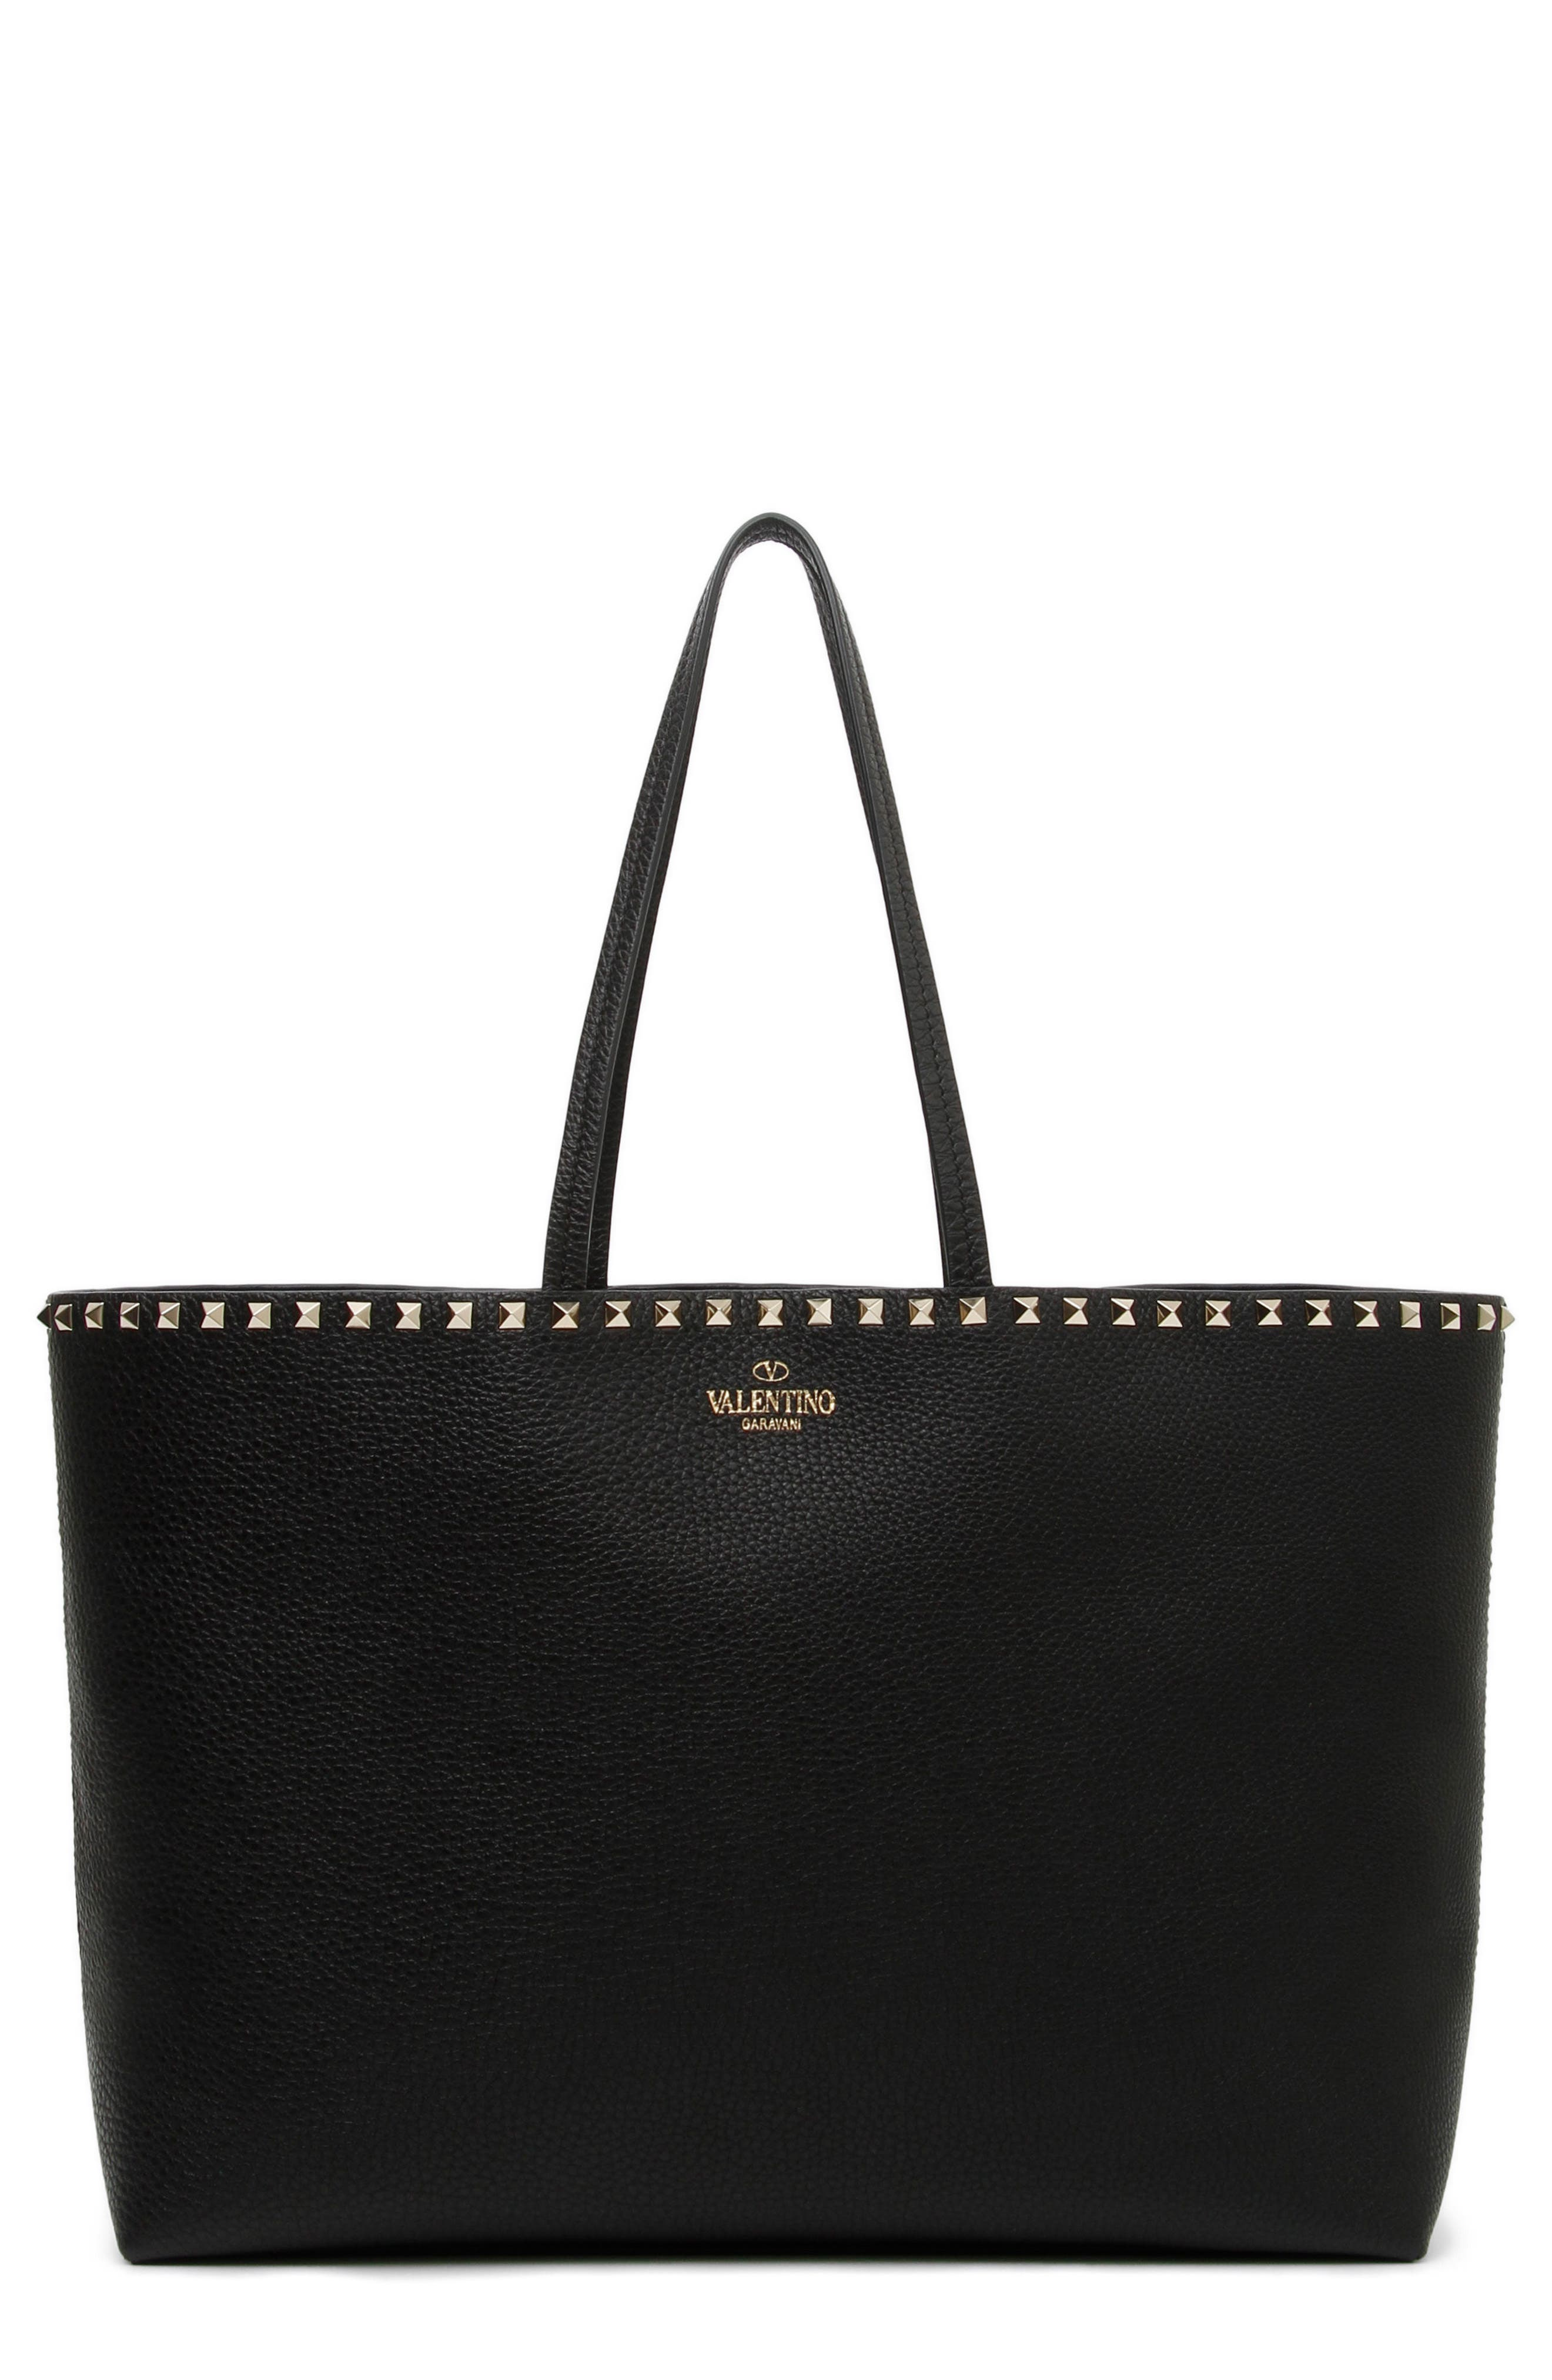 Rockstud Leather Tote,                             Main thumbnail 1, color,                             001